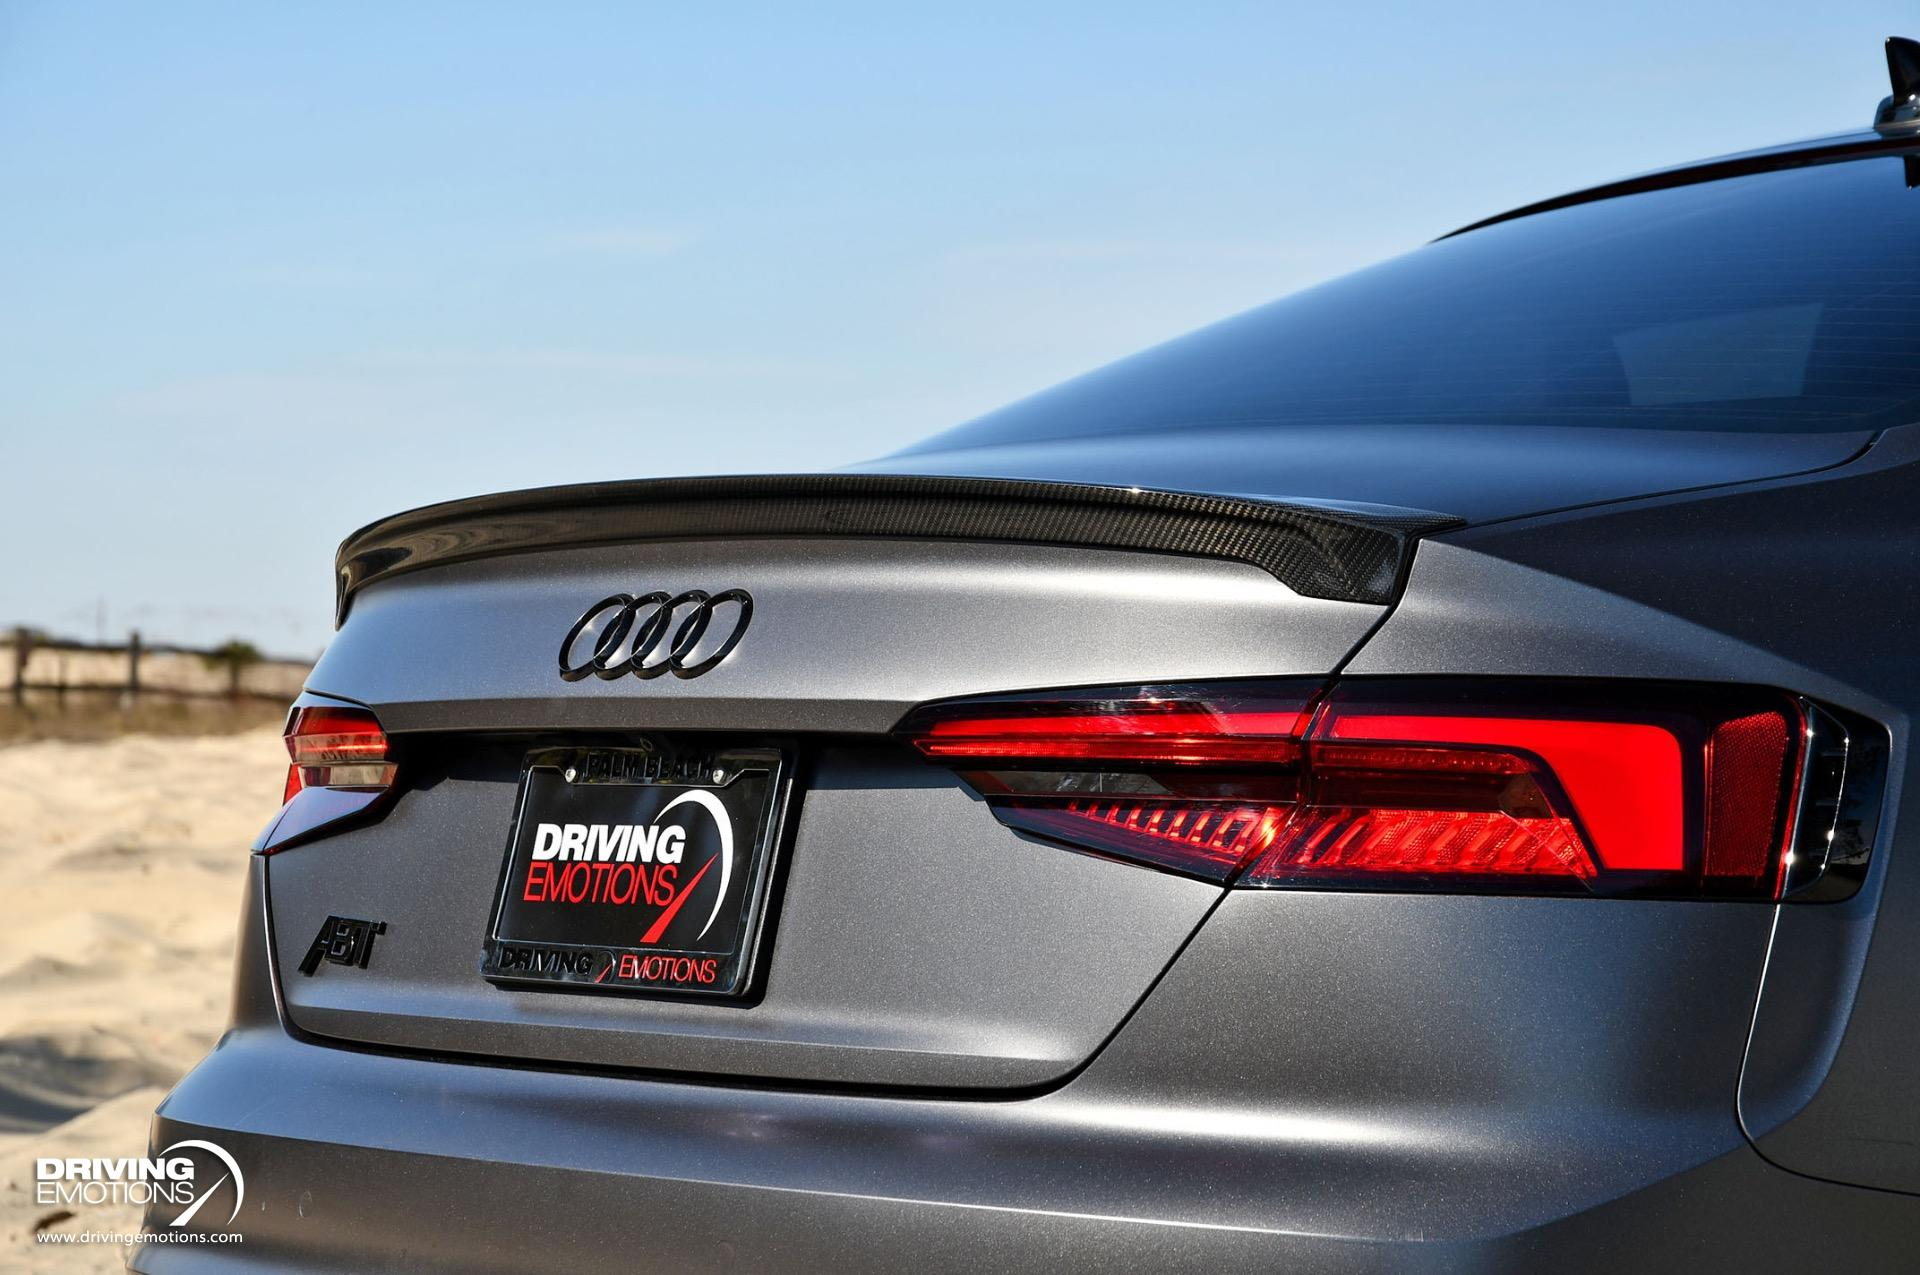 Used 2018 Audi RS 5 ABT RS5-R 2.9T quattro ABT RS5-R! 1 of 50 Built!! | Lake Park, FL